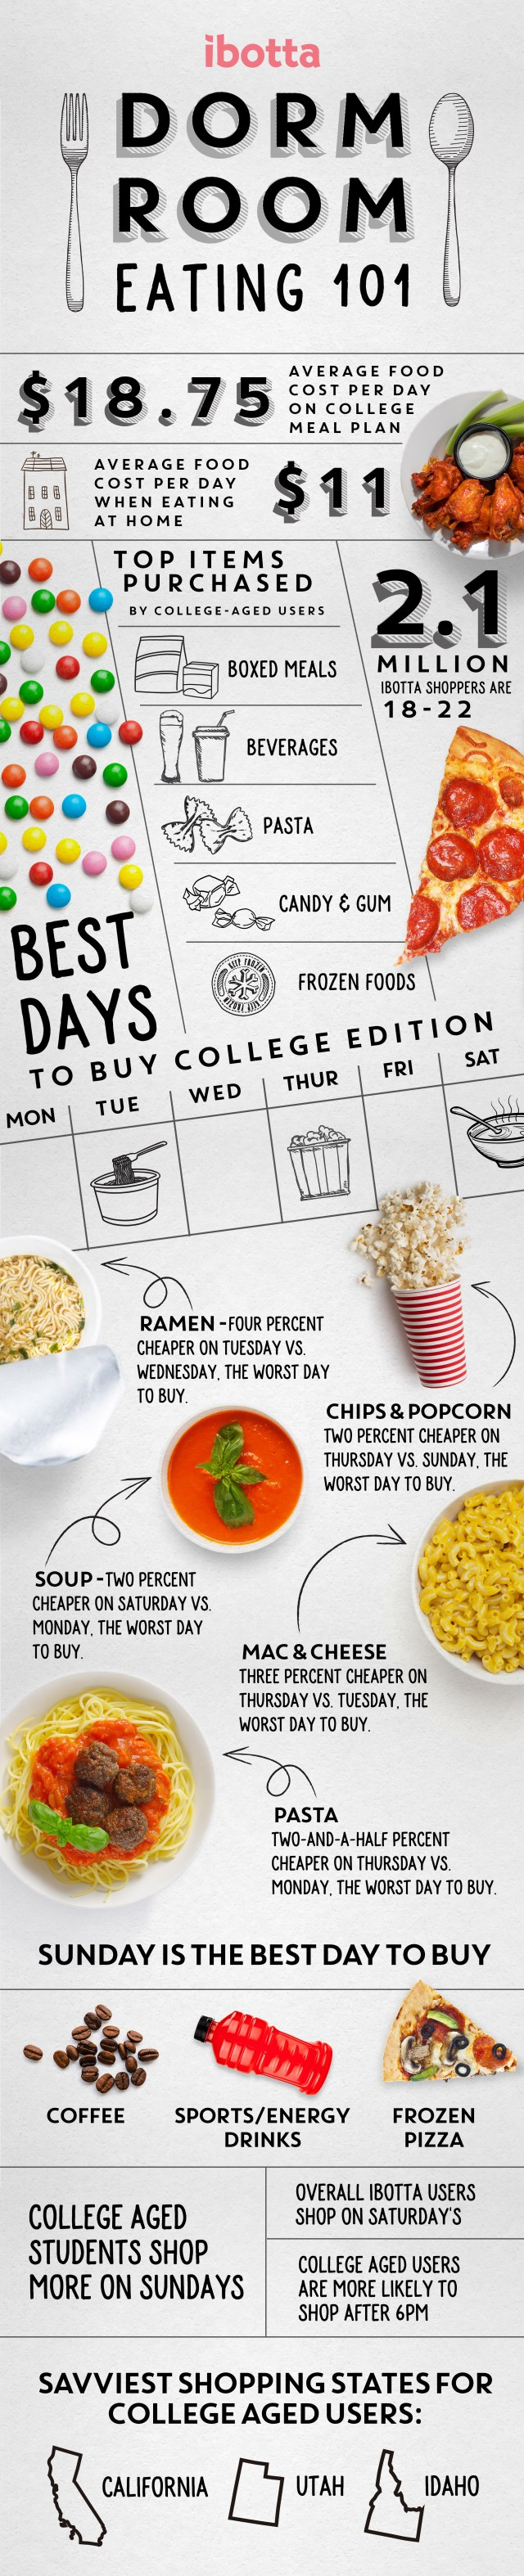 College Dorm Eating 101: Best Days to Buy Products!